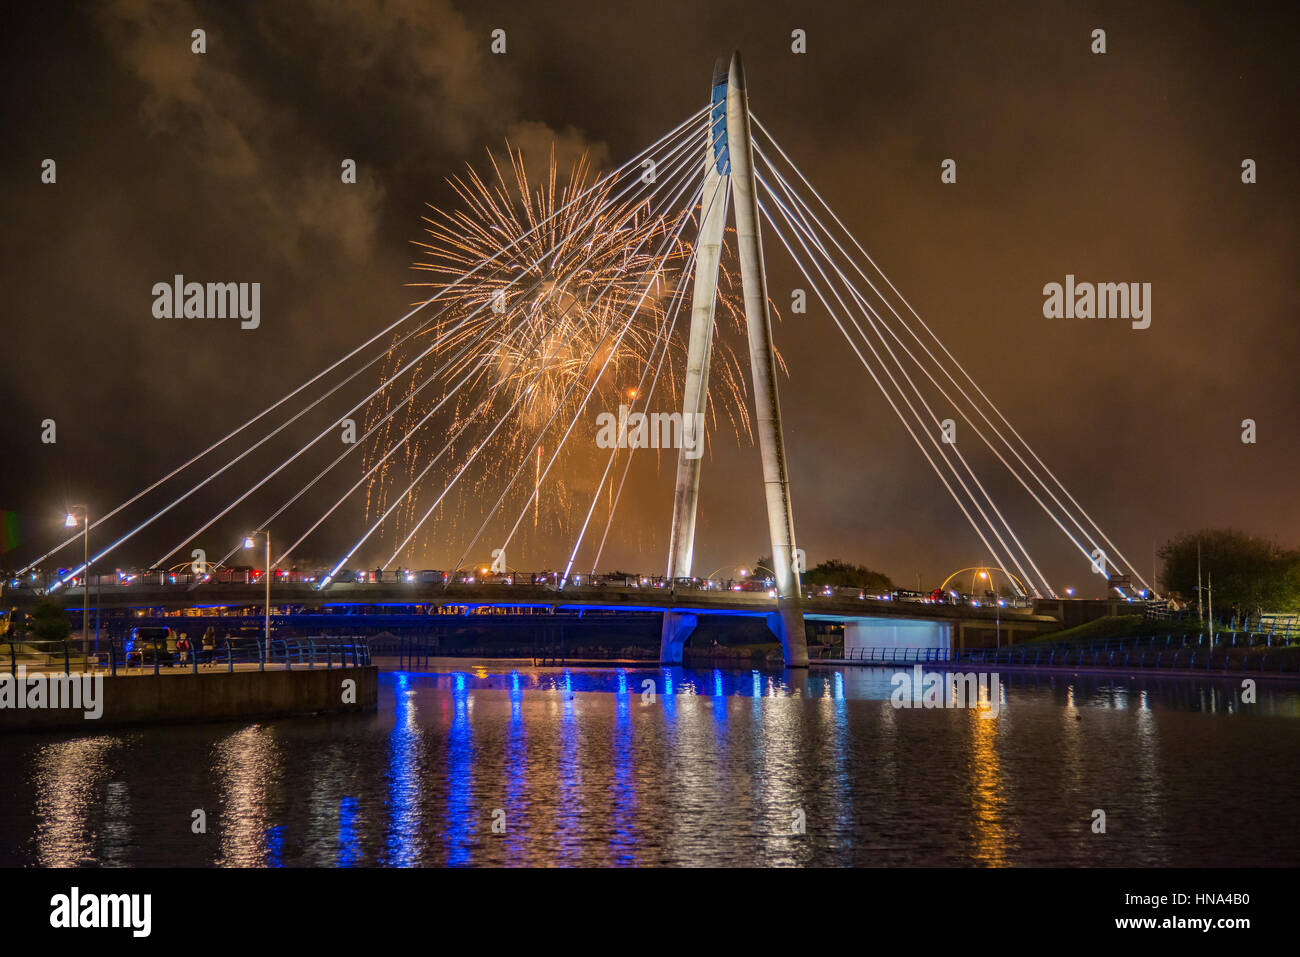 Reflections on Southport fireworks competition display over the Marine Lake. - Stock Image